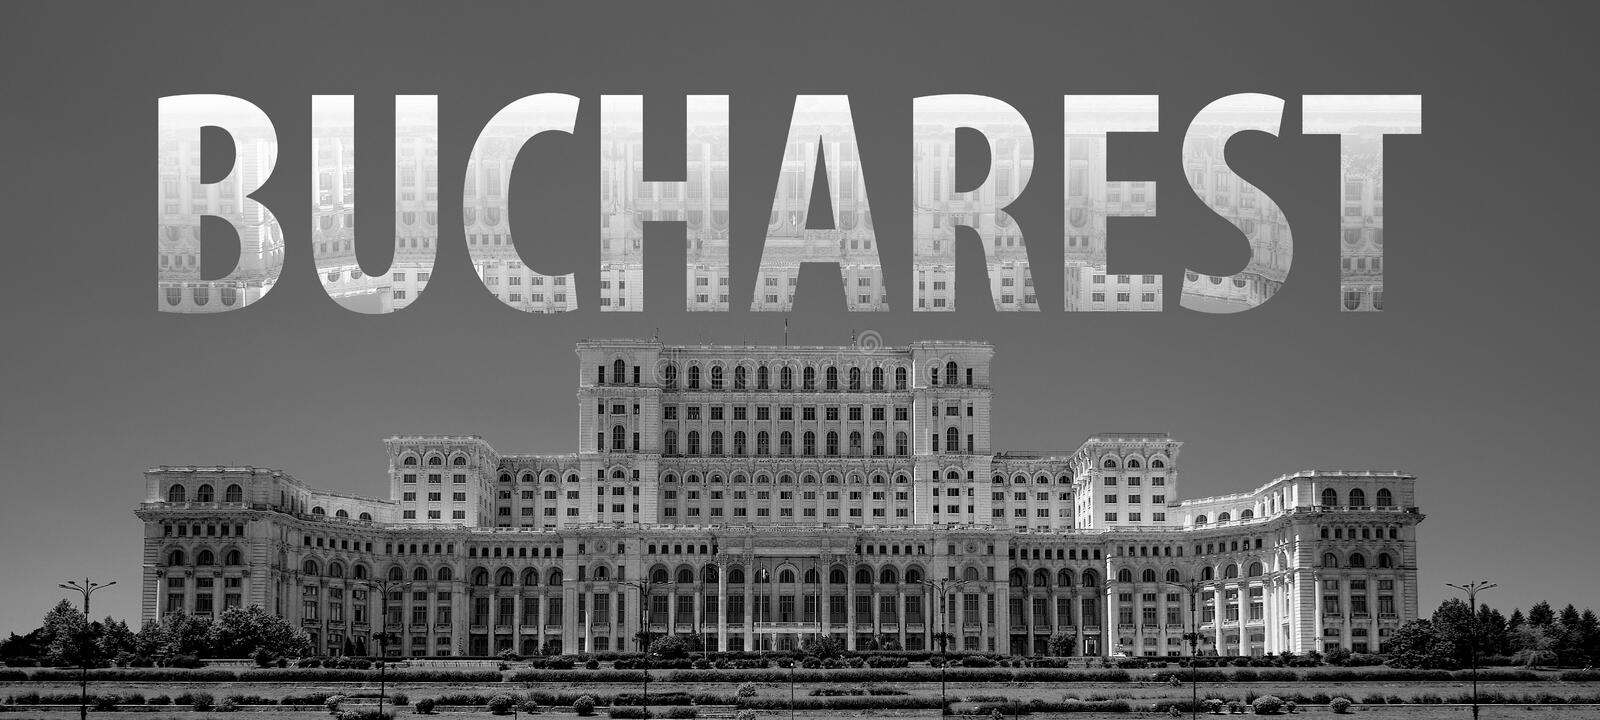 Bucharest Lettering in Black and White. In Romania in Europe royalty free stock photography